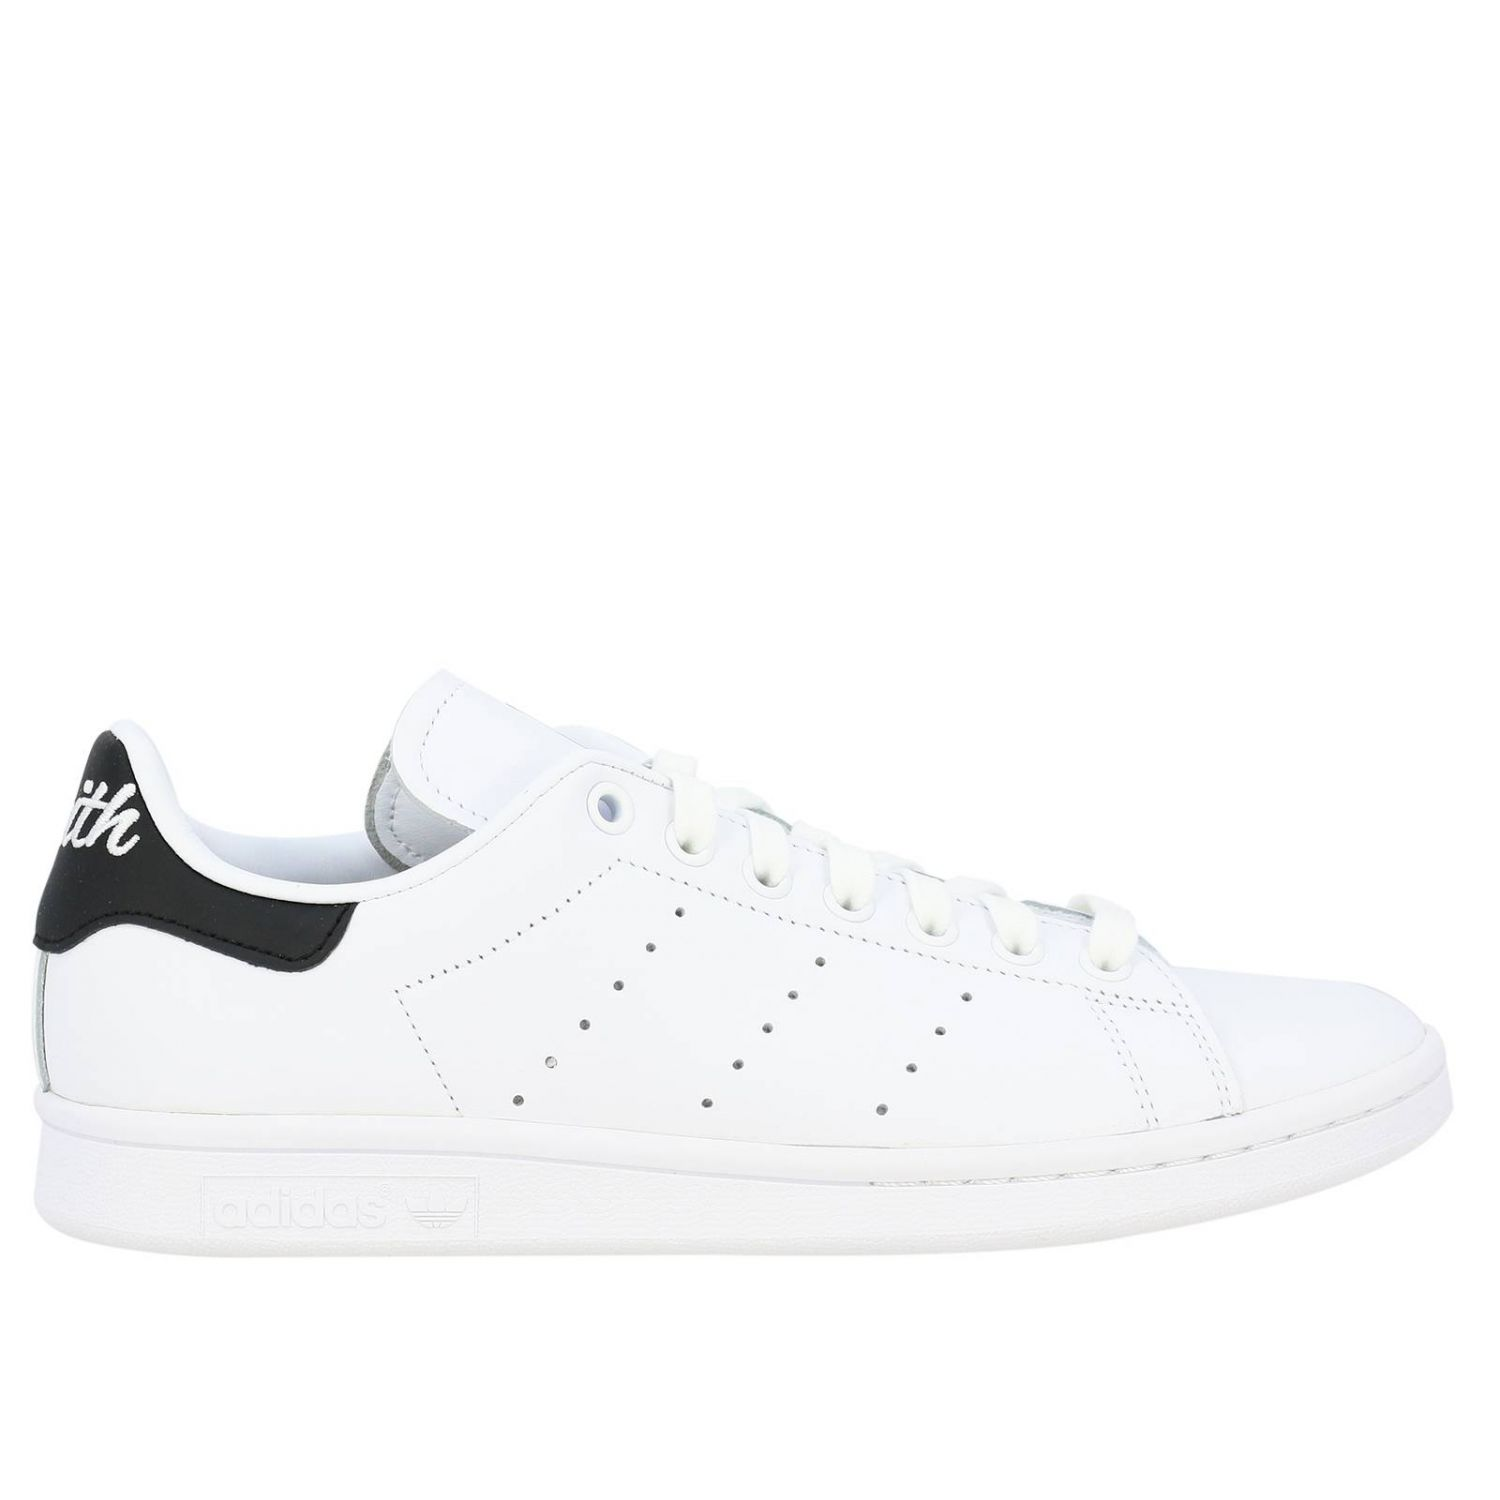 Sneakers Adidas Originals: Stan Smith Adidas Originals Sneakers in leather with contrasting heel white 1